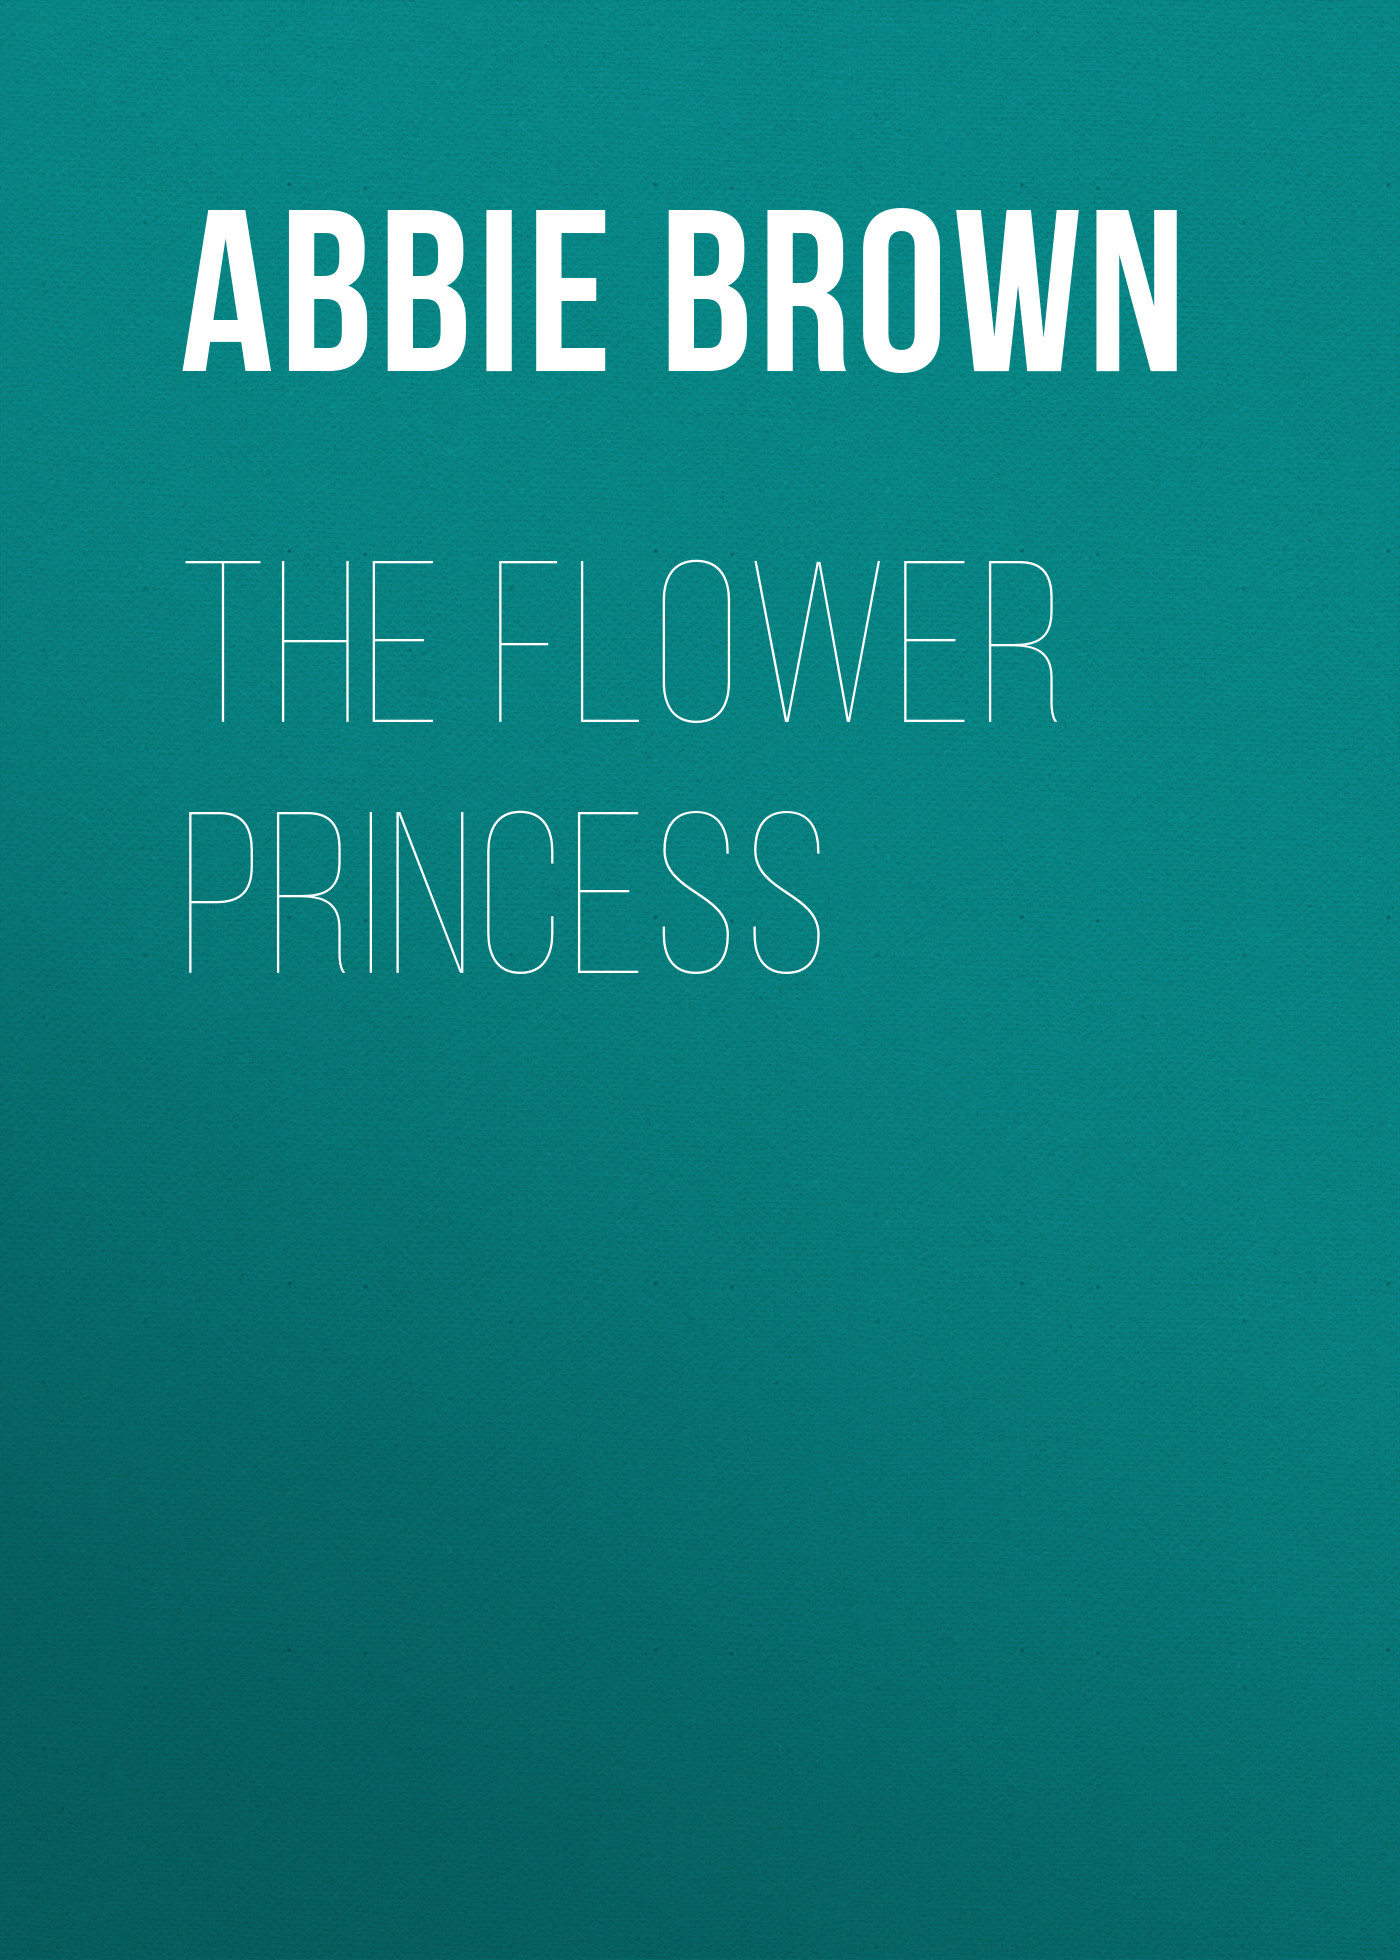 Brown Abbie Farwell The Flower Princess защитная пленка red line для samsung galaxy s5 матовая